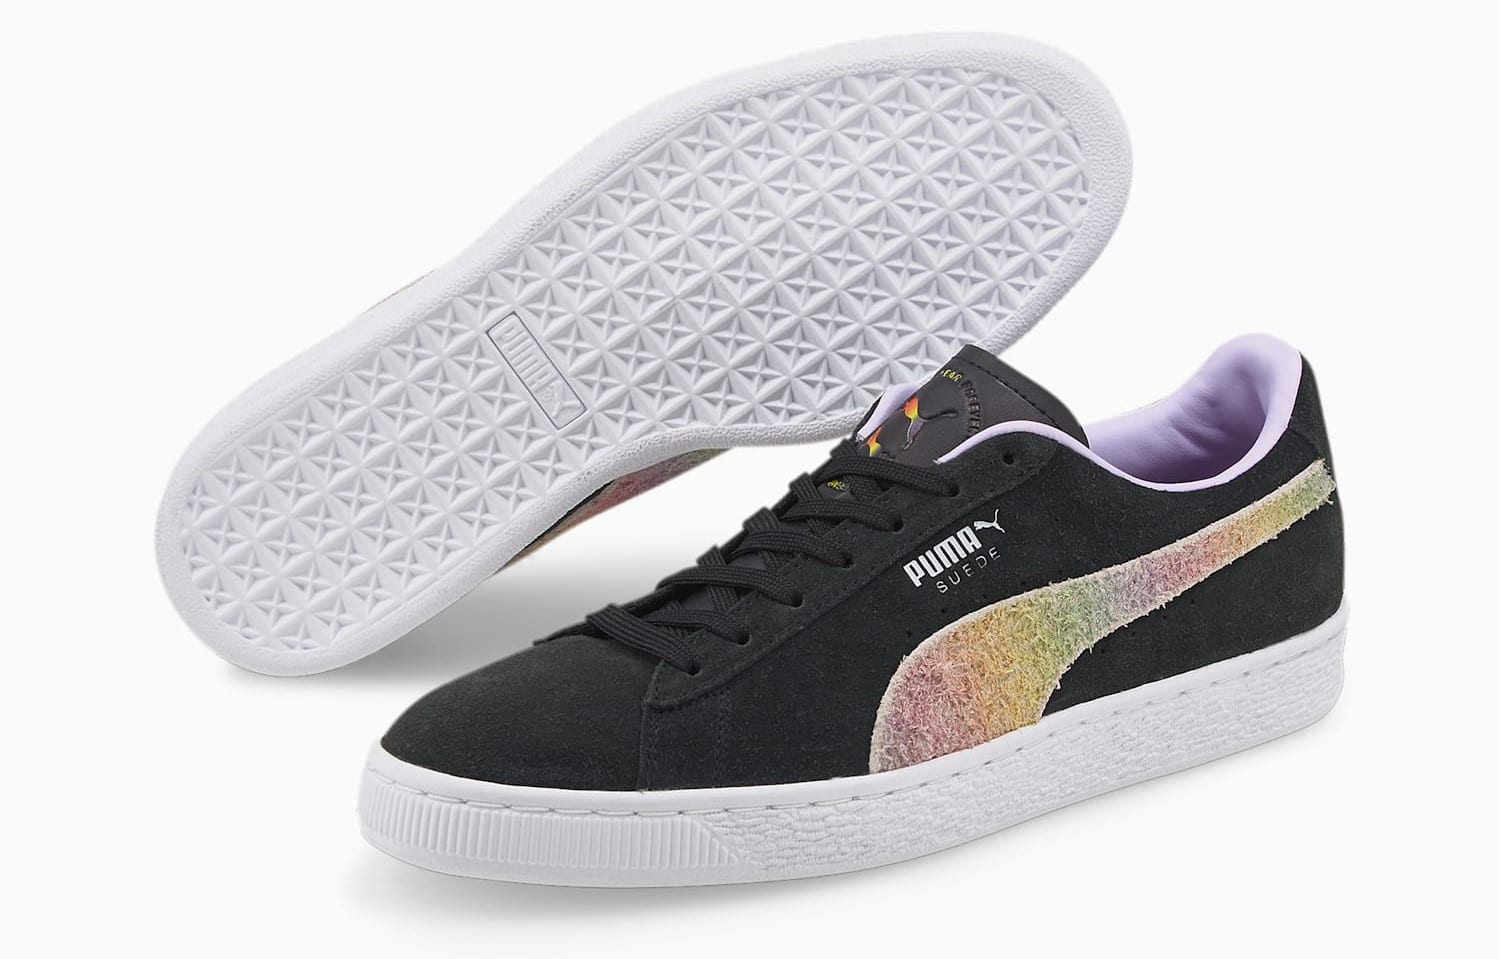 Puma's Pride Collection with Cara Delevingne is selling out fast 16